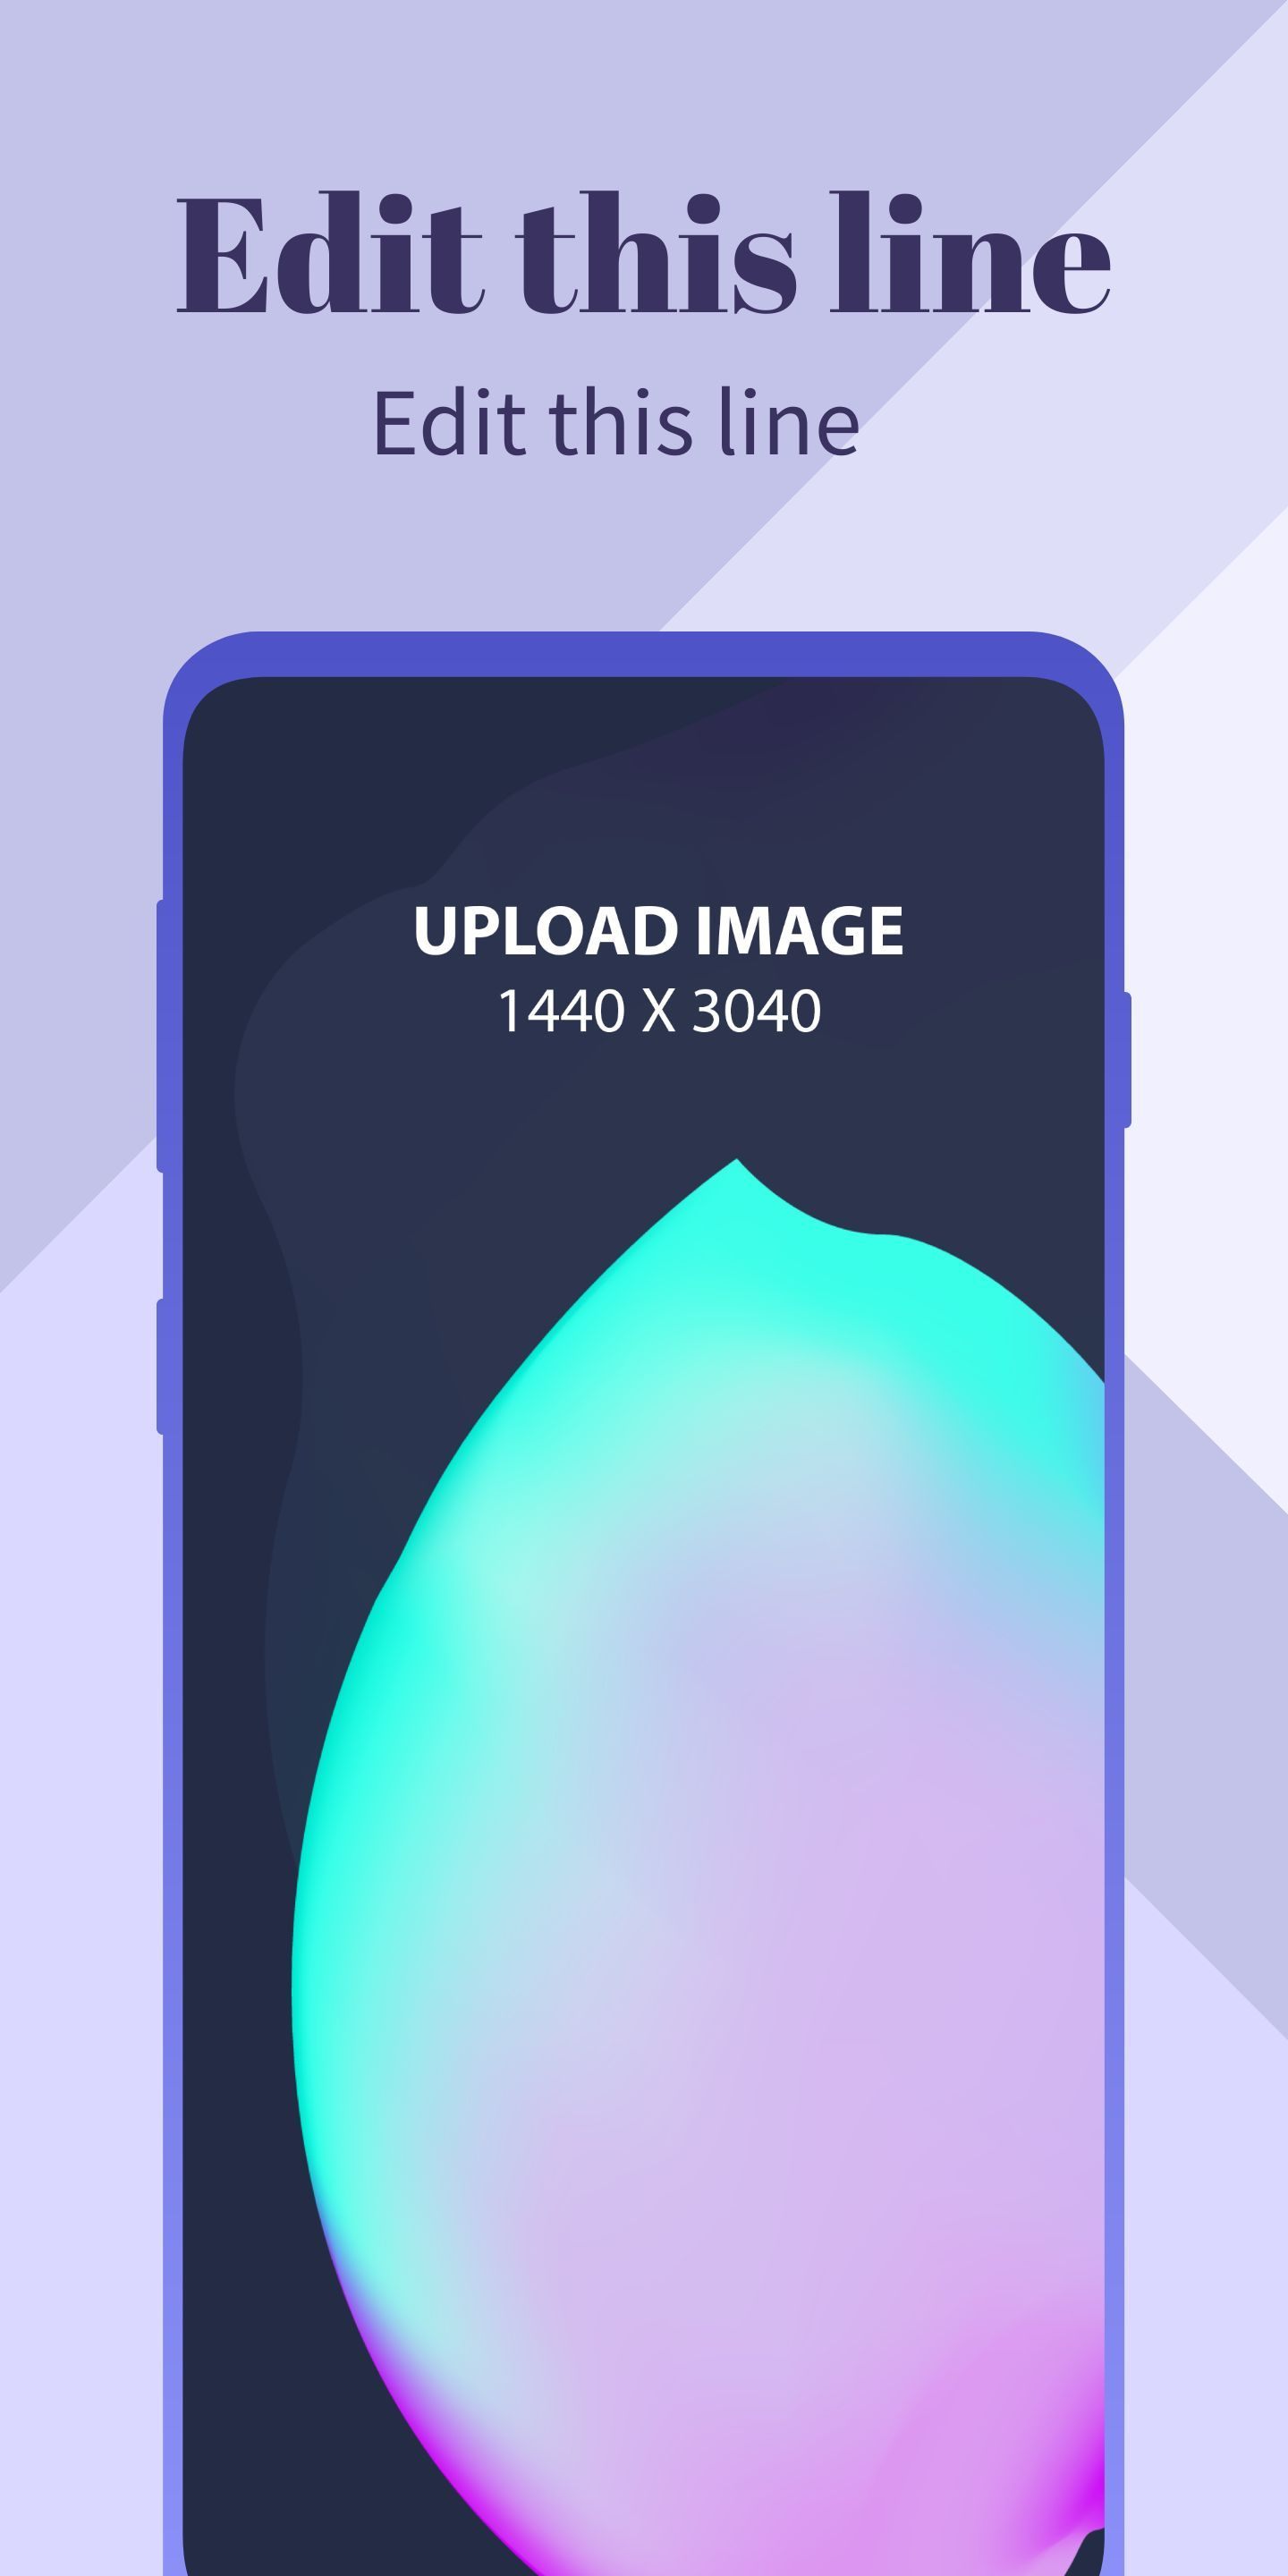 Samsung S10 Screenshot 5 template. Quickly edit text, colors, images, and more for free.